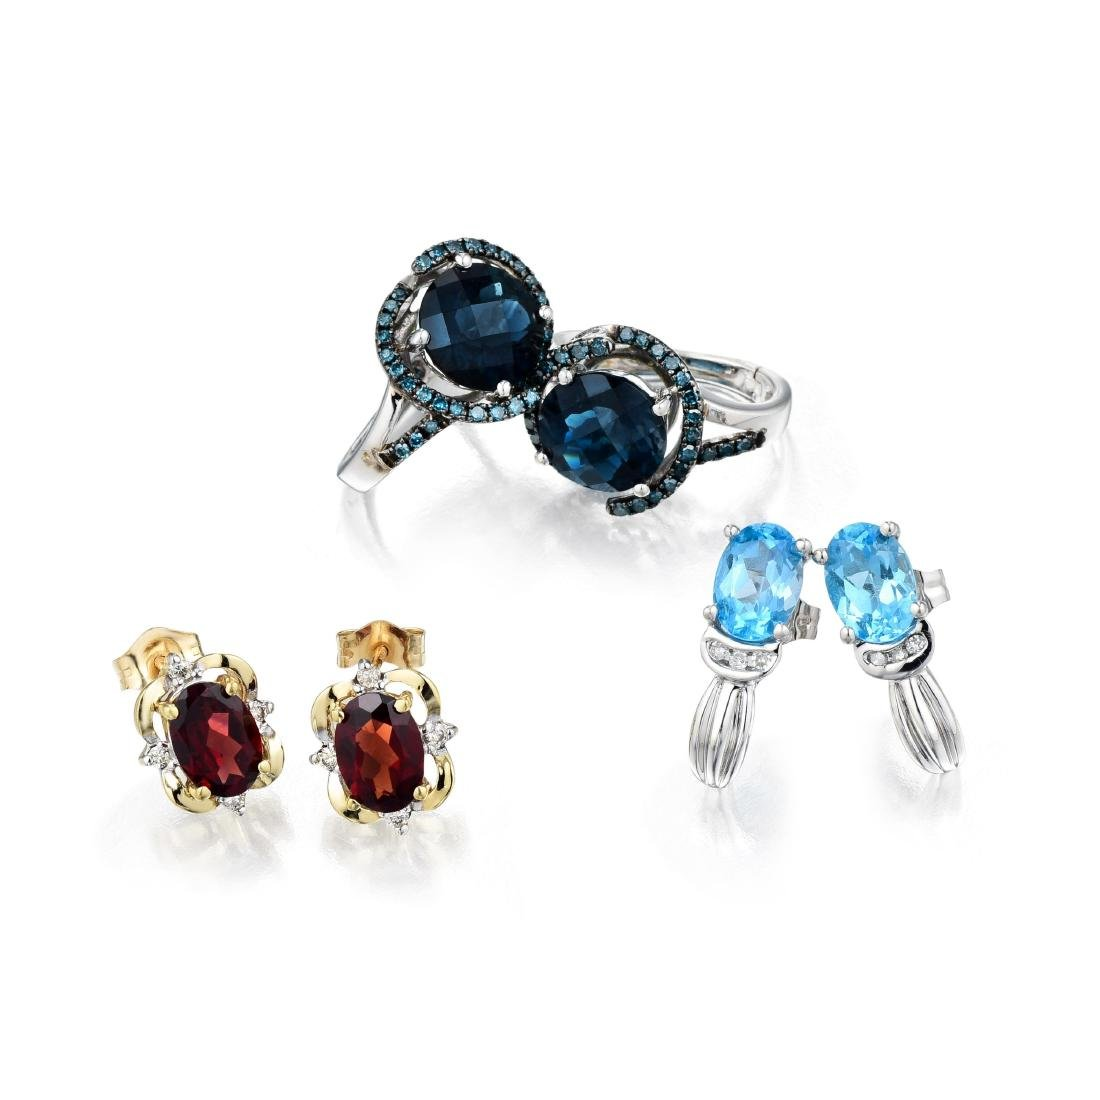 A Group of 14K and 10K Gold Gemstone Earrings With Blue